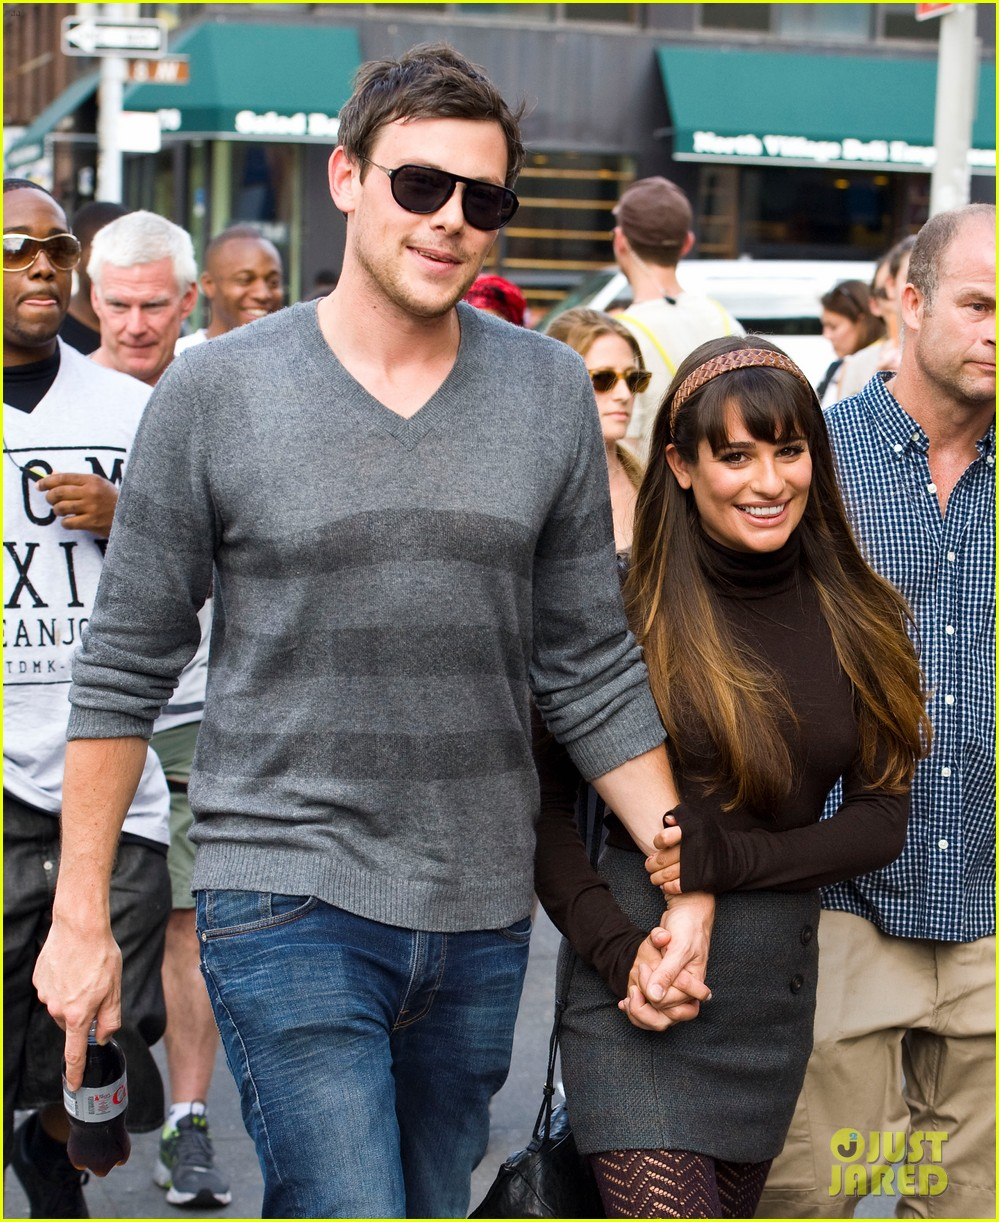 michele lea and cory monteith dating Cory monteith was dating lea michele until he passed away lea michele who was cory monteith cory monteith was an actor who was most well-known for his role asfinn.